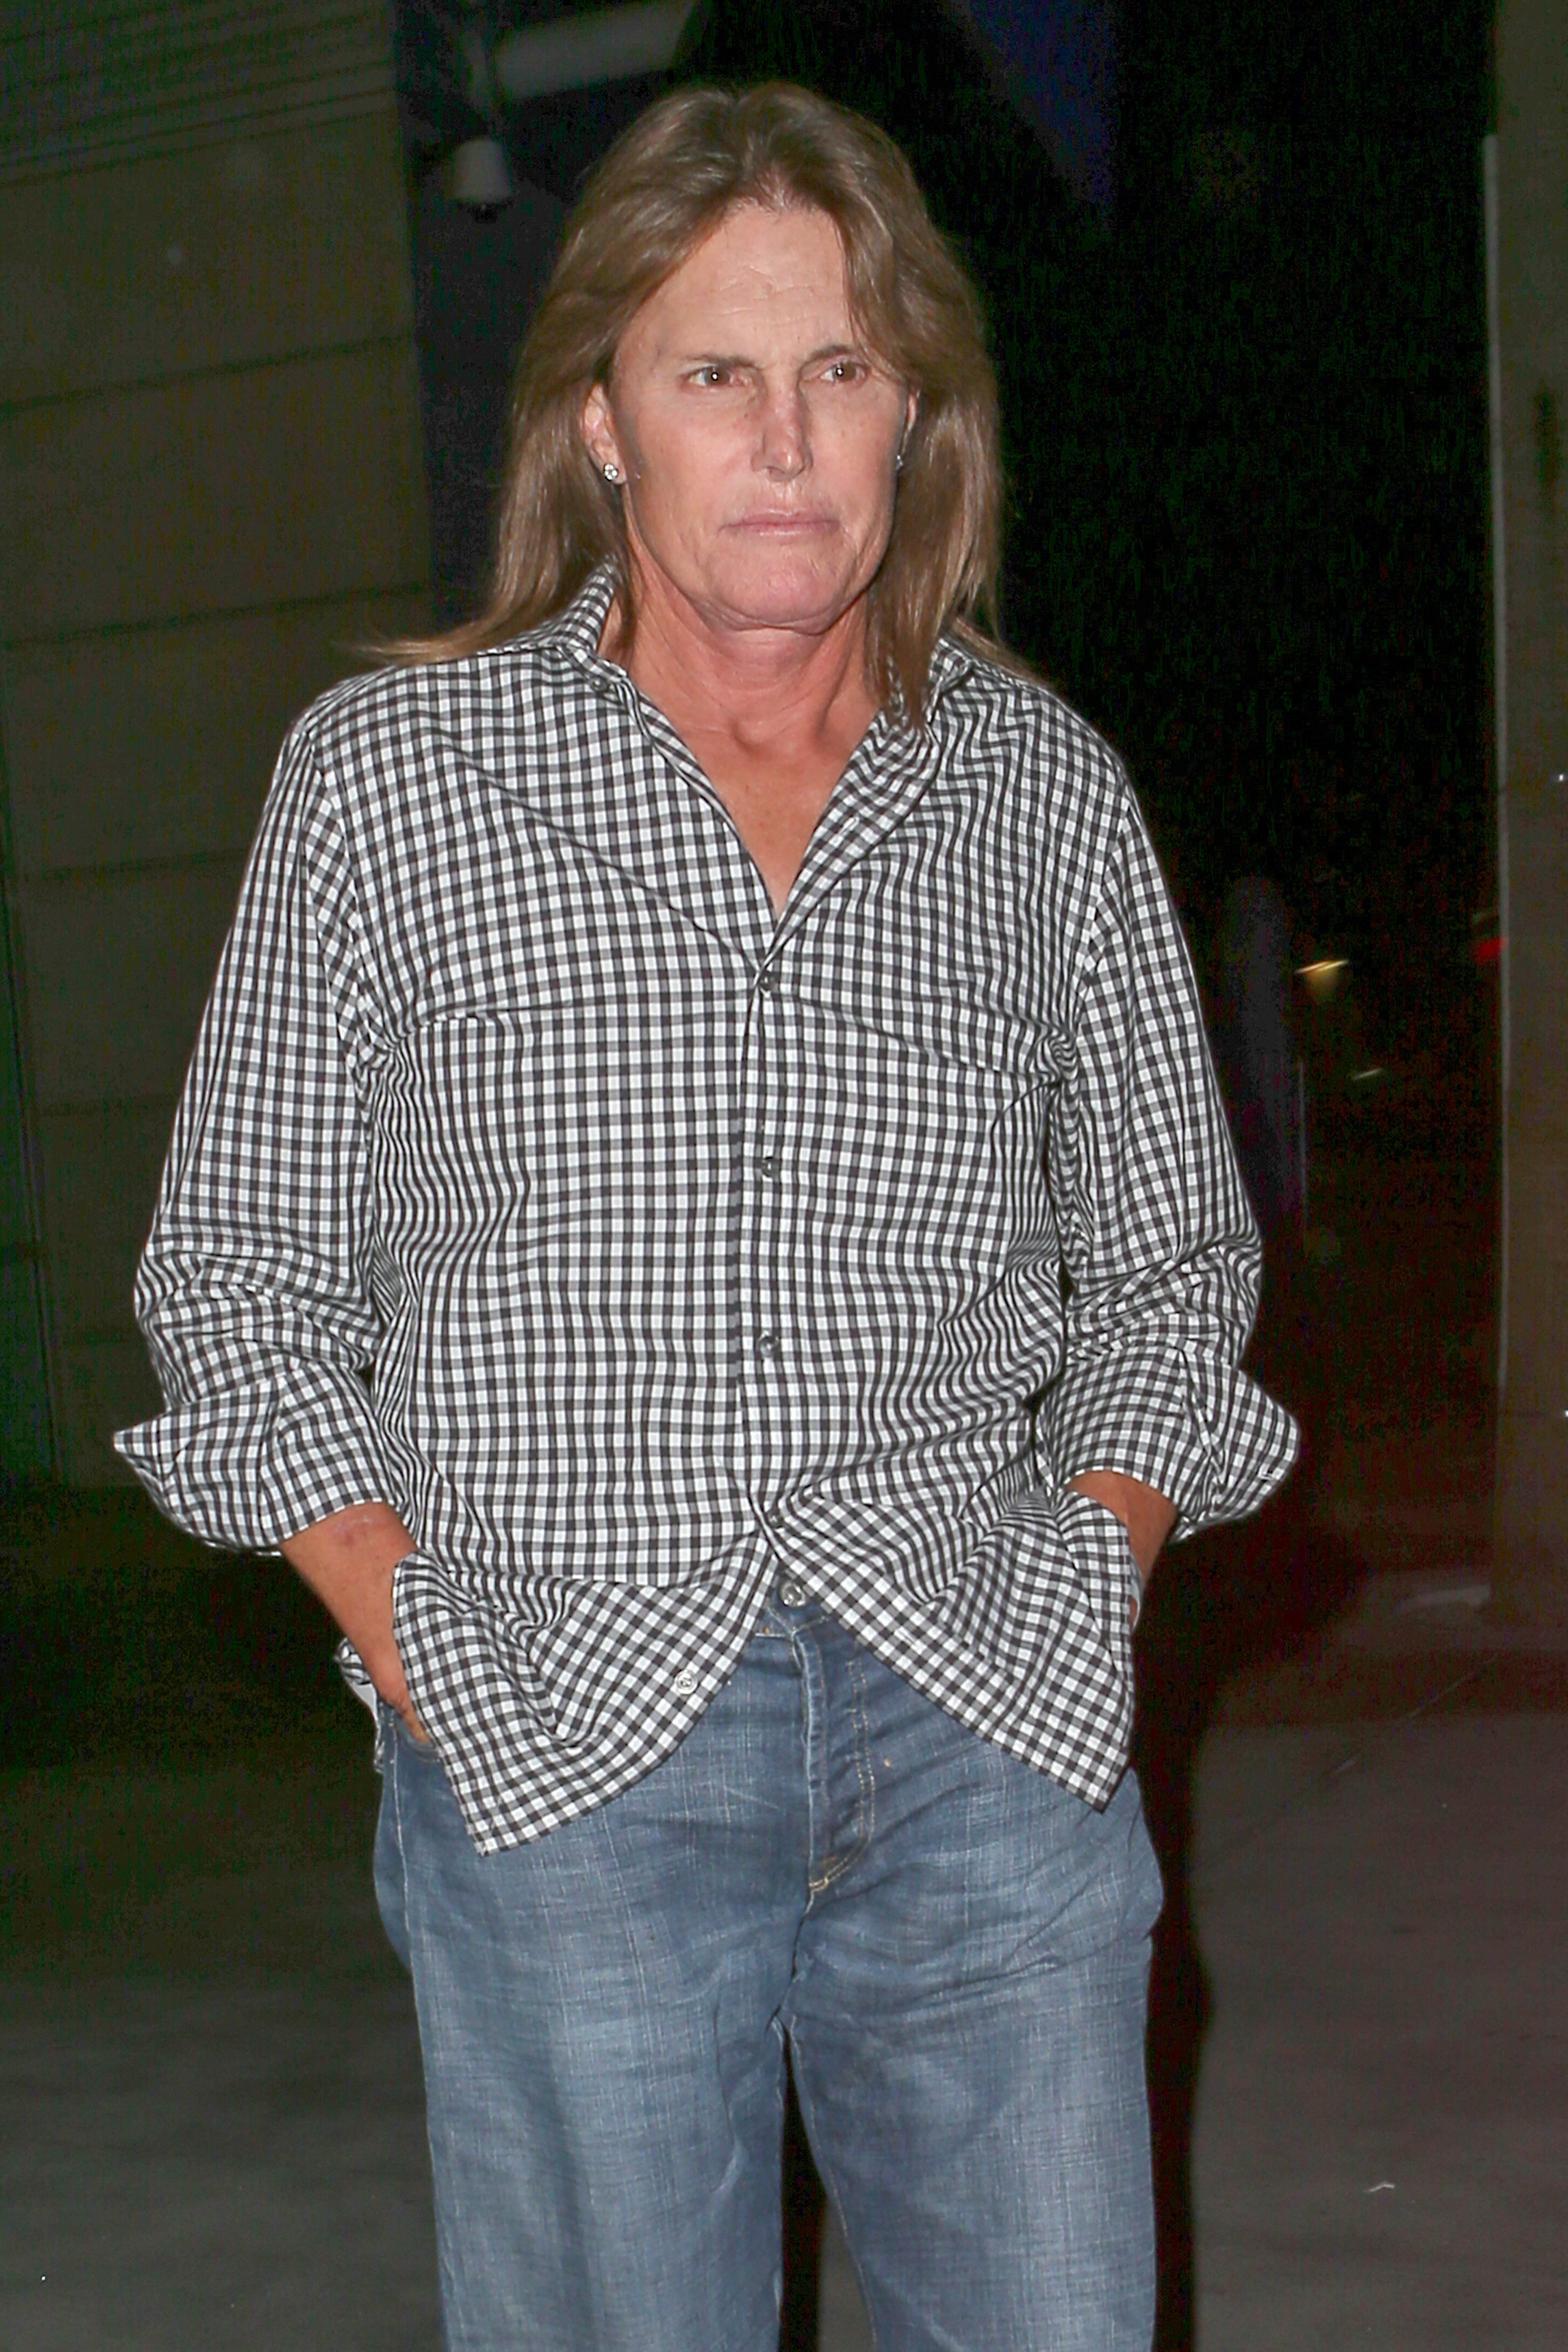 Bruce Jenner will address changing appearance on 'KUWTK': Report